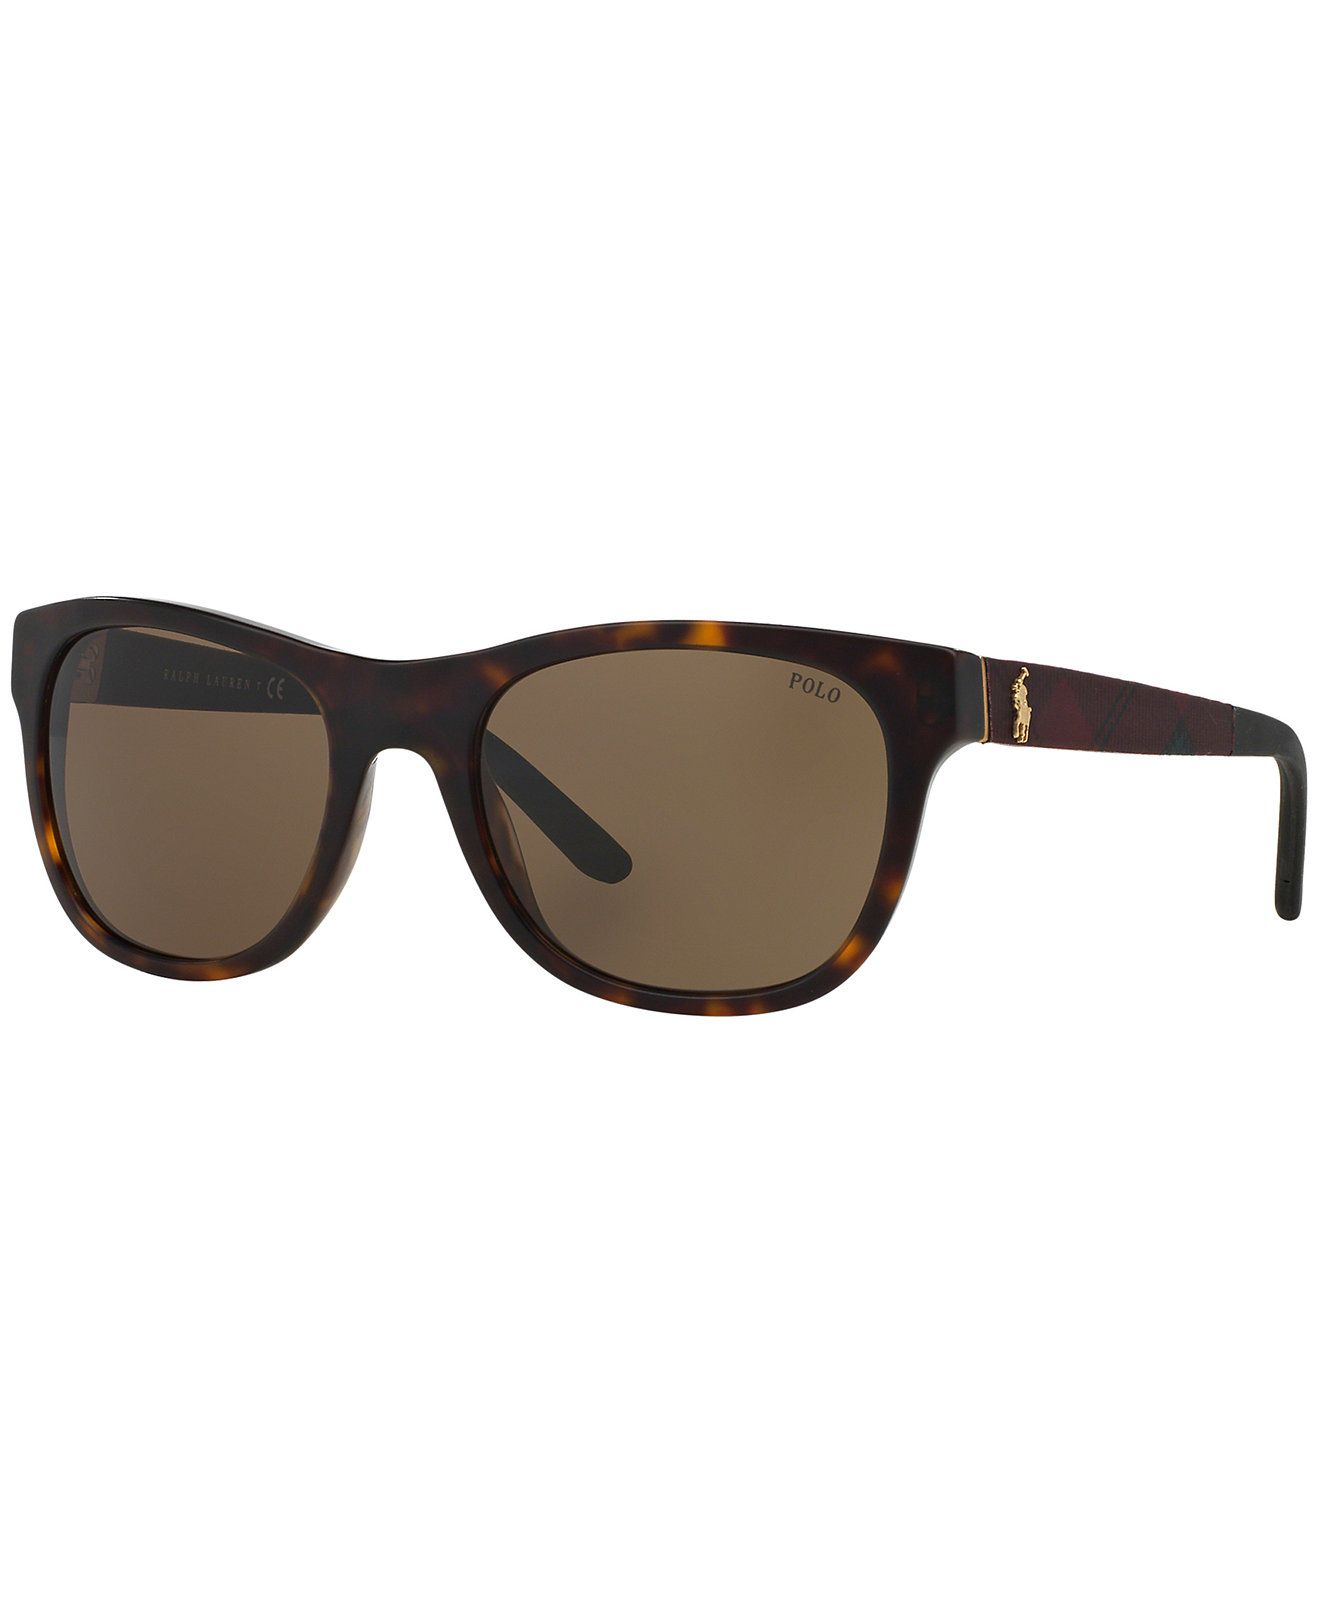 Polo Ralph Lauren Sunglasses, POLO RALPH LAUREN PH4091 55 - Sunglasses - Men - Macy's